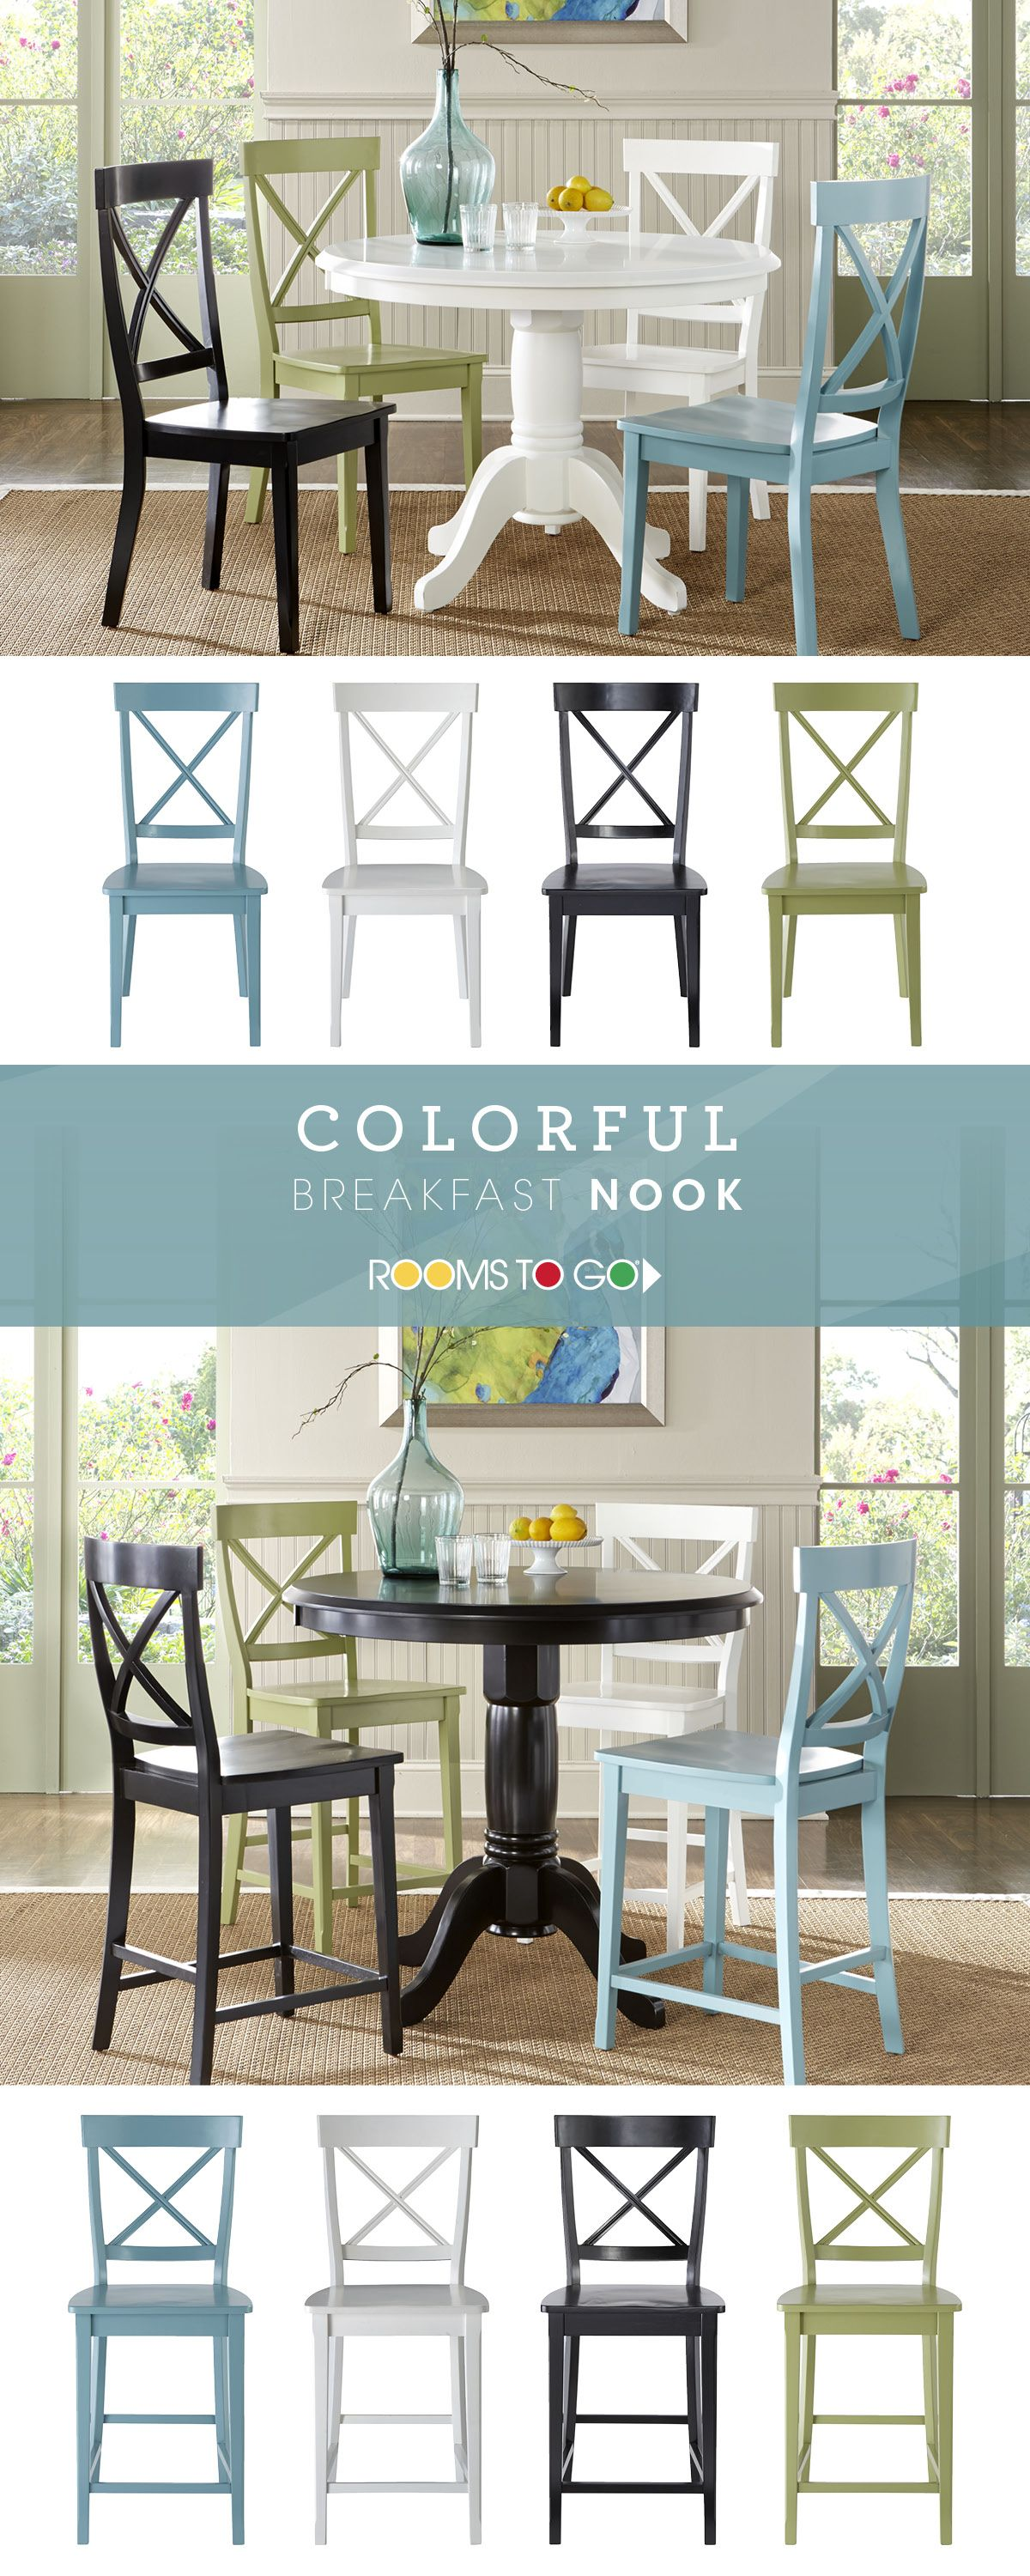 Designing Your Perfect Breakfast Nook With Two Table Heights And Plenty Of Colors To Choose From R Round Dining Room Round Dining Room Sets Dining Room Table